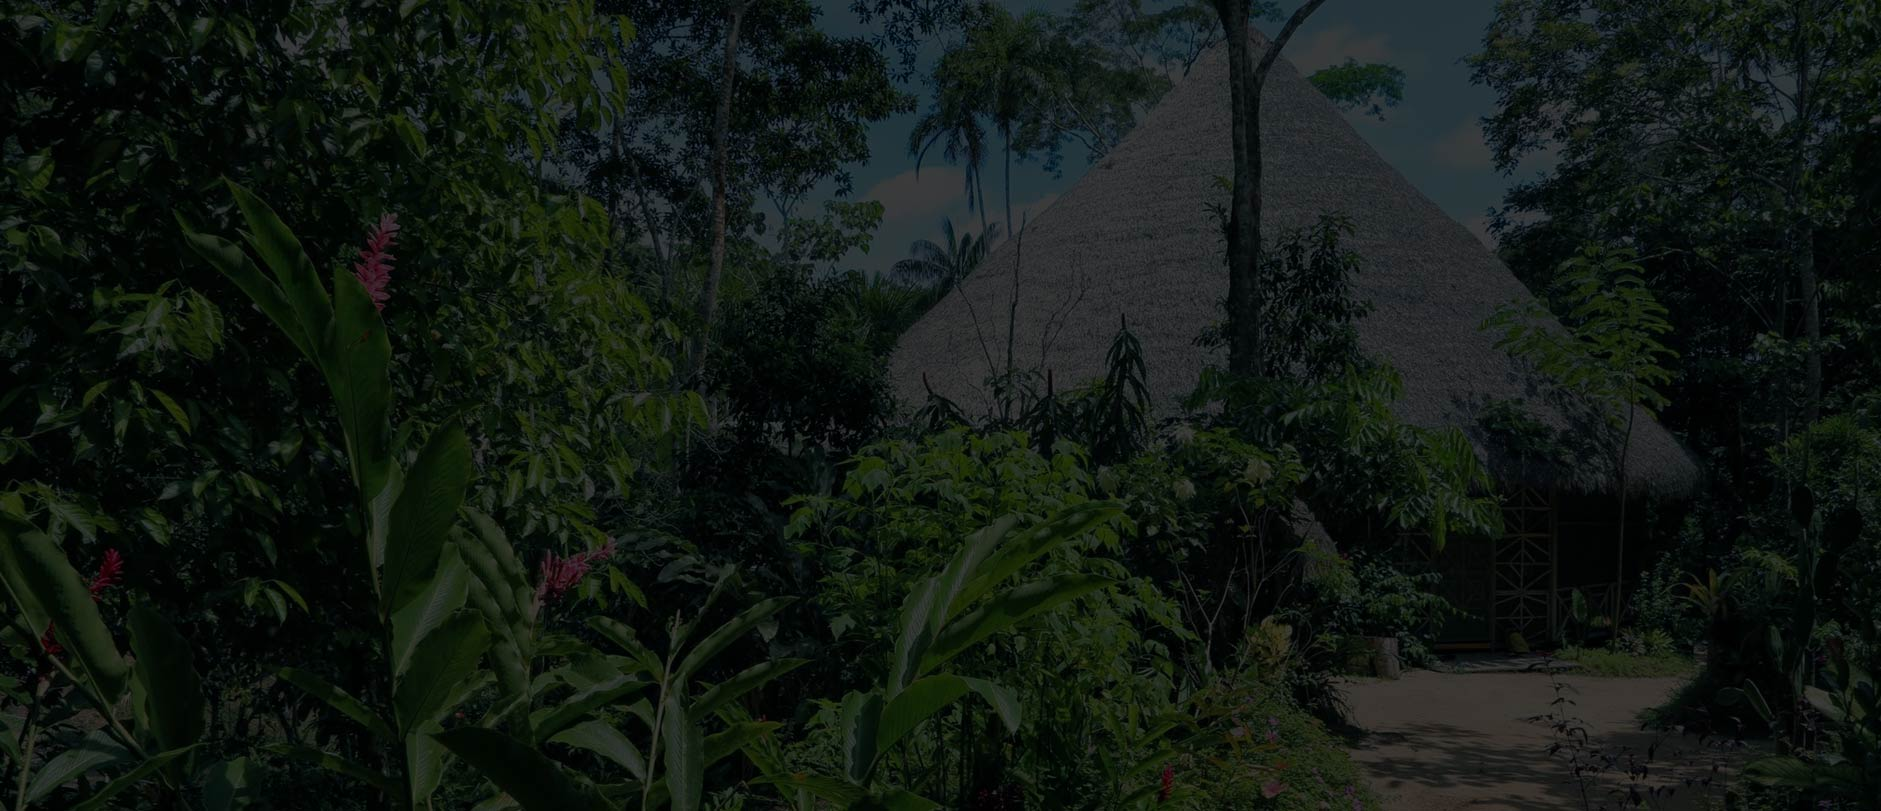 Ayahuasca Retreat Peru, Traditional Retreat Center in the Amazon of Peru